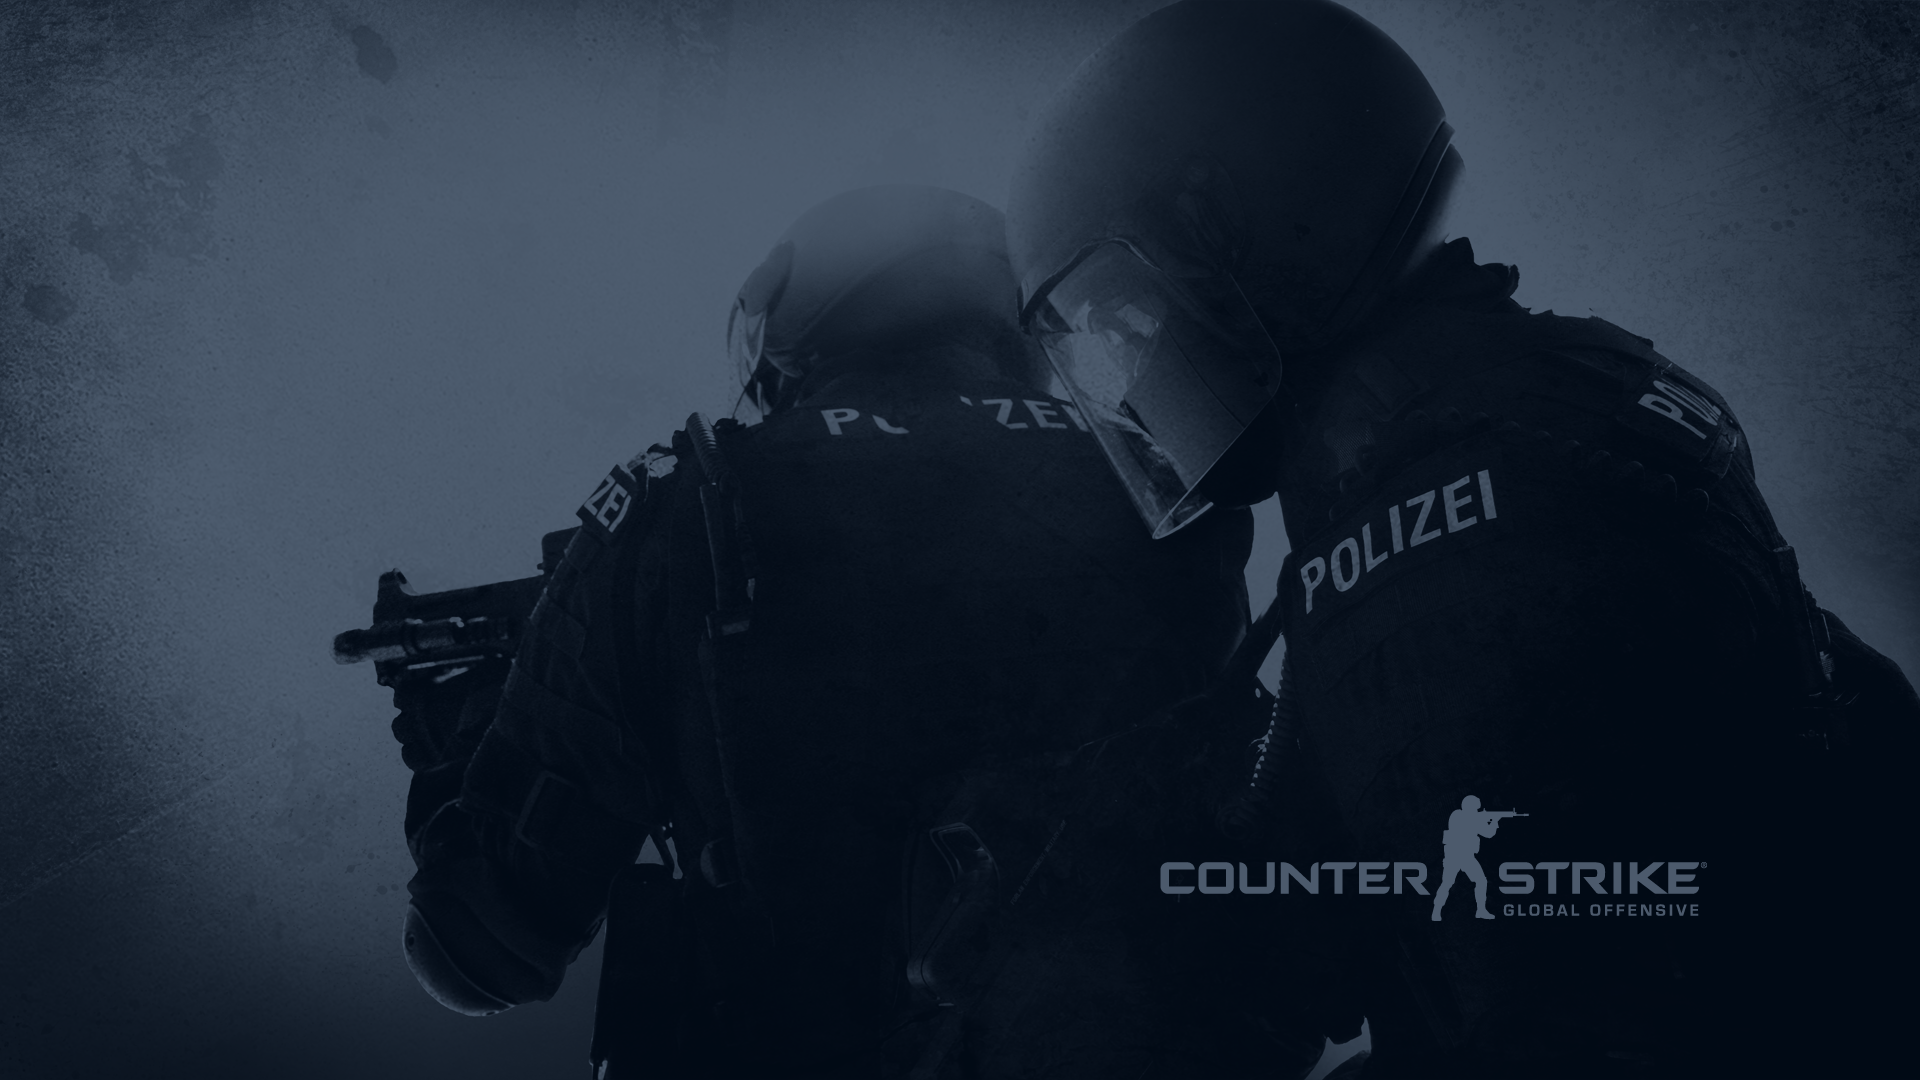 Counter strike wallpaper HD 2png 1920x1080